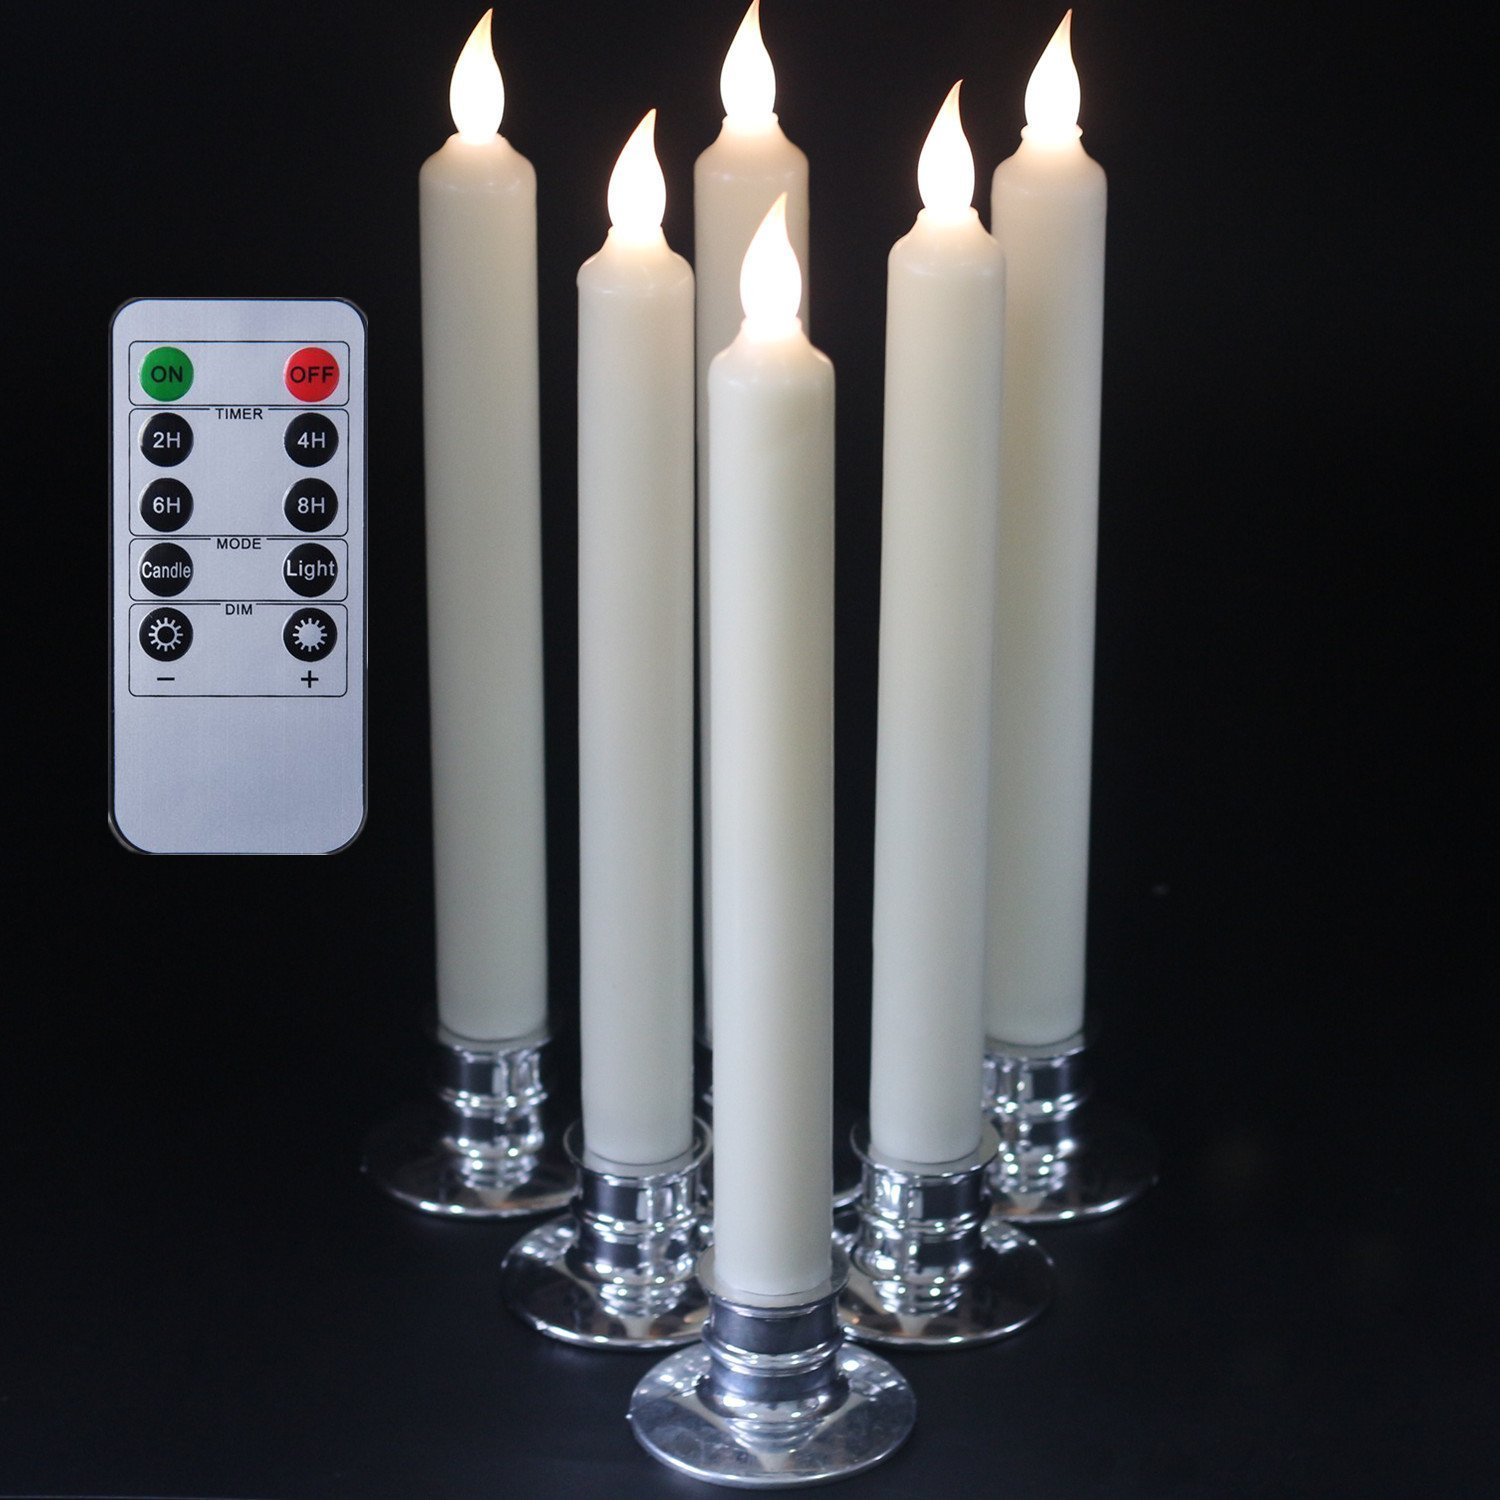 set of 6 flameless ivory battery powered taper candles with remote led candles waxcandle holder included amazoncouk kitchen u0026 home